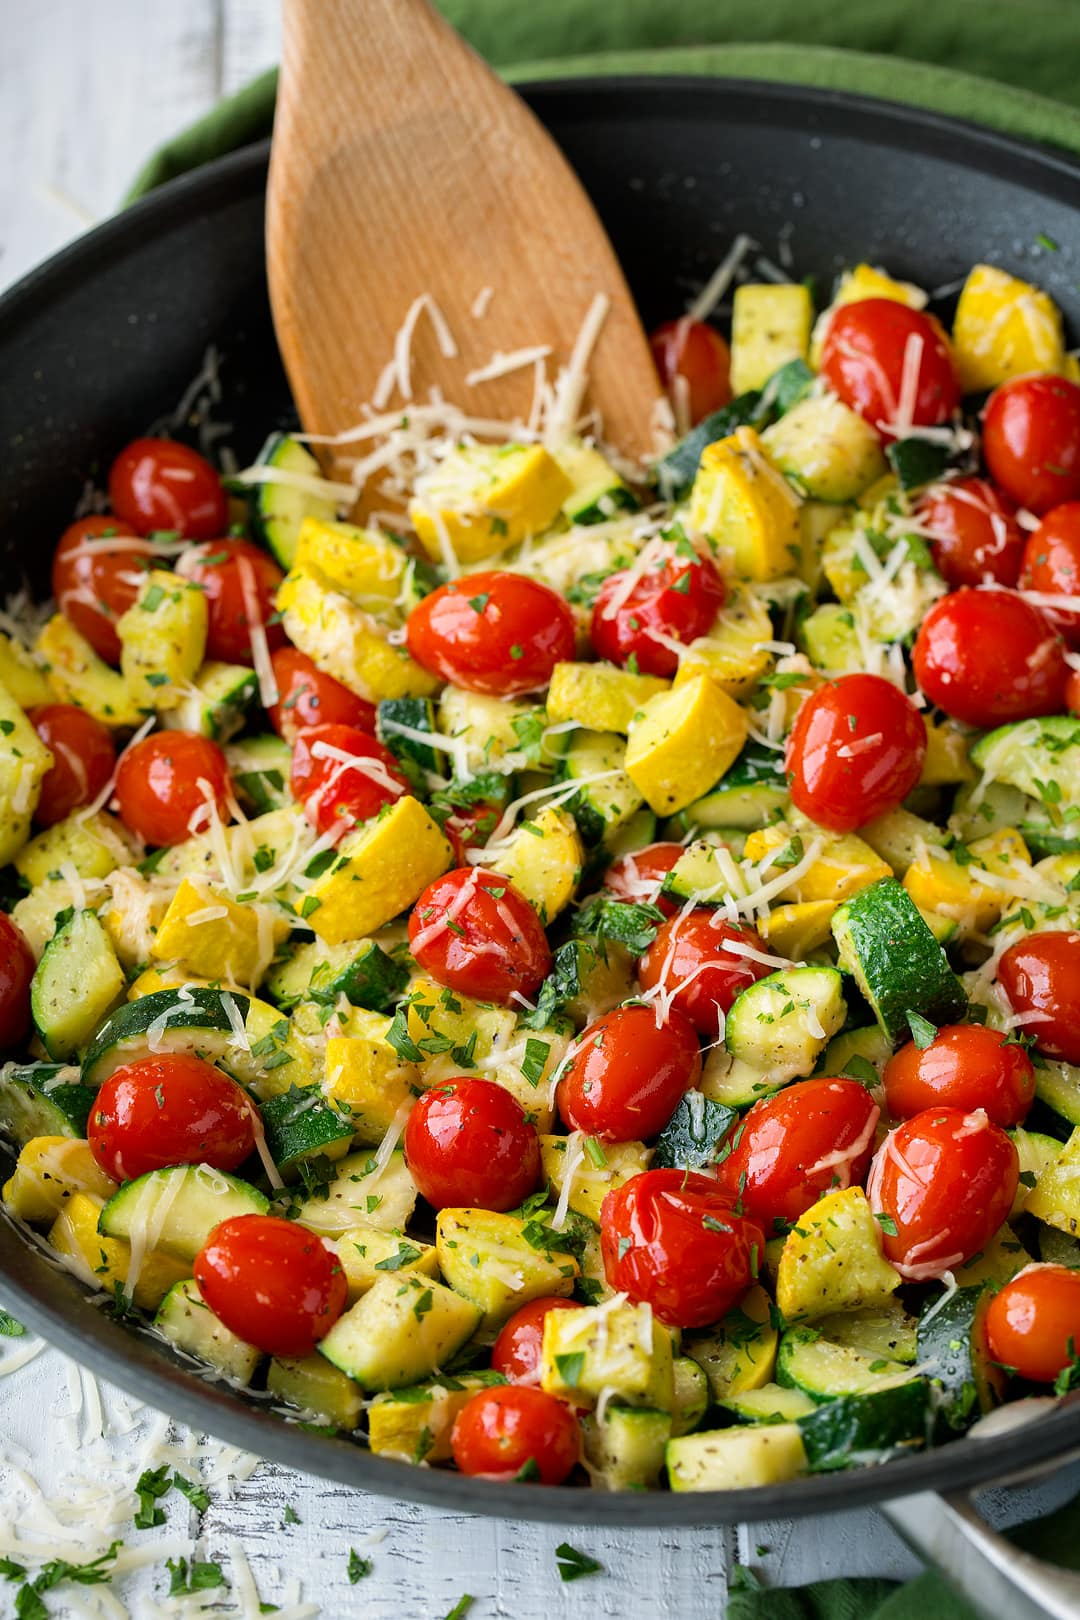 sauteed zucchini and squash with tomatoes in a large black skillet.